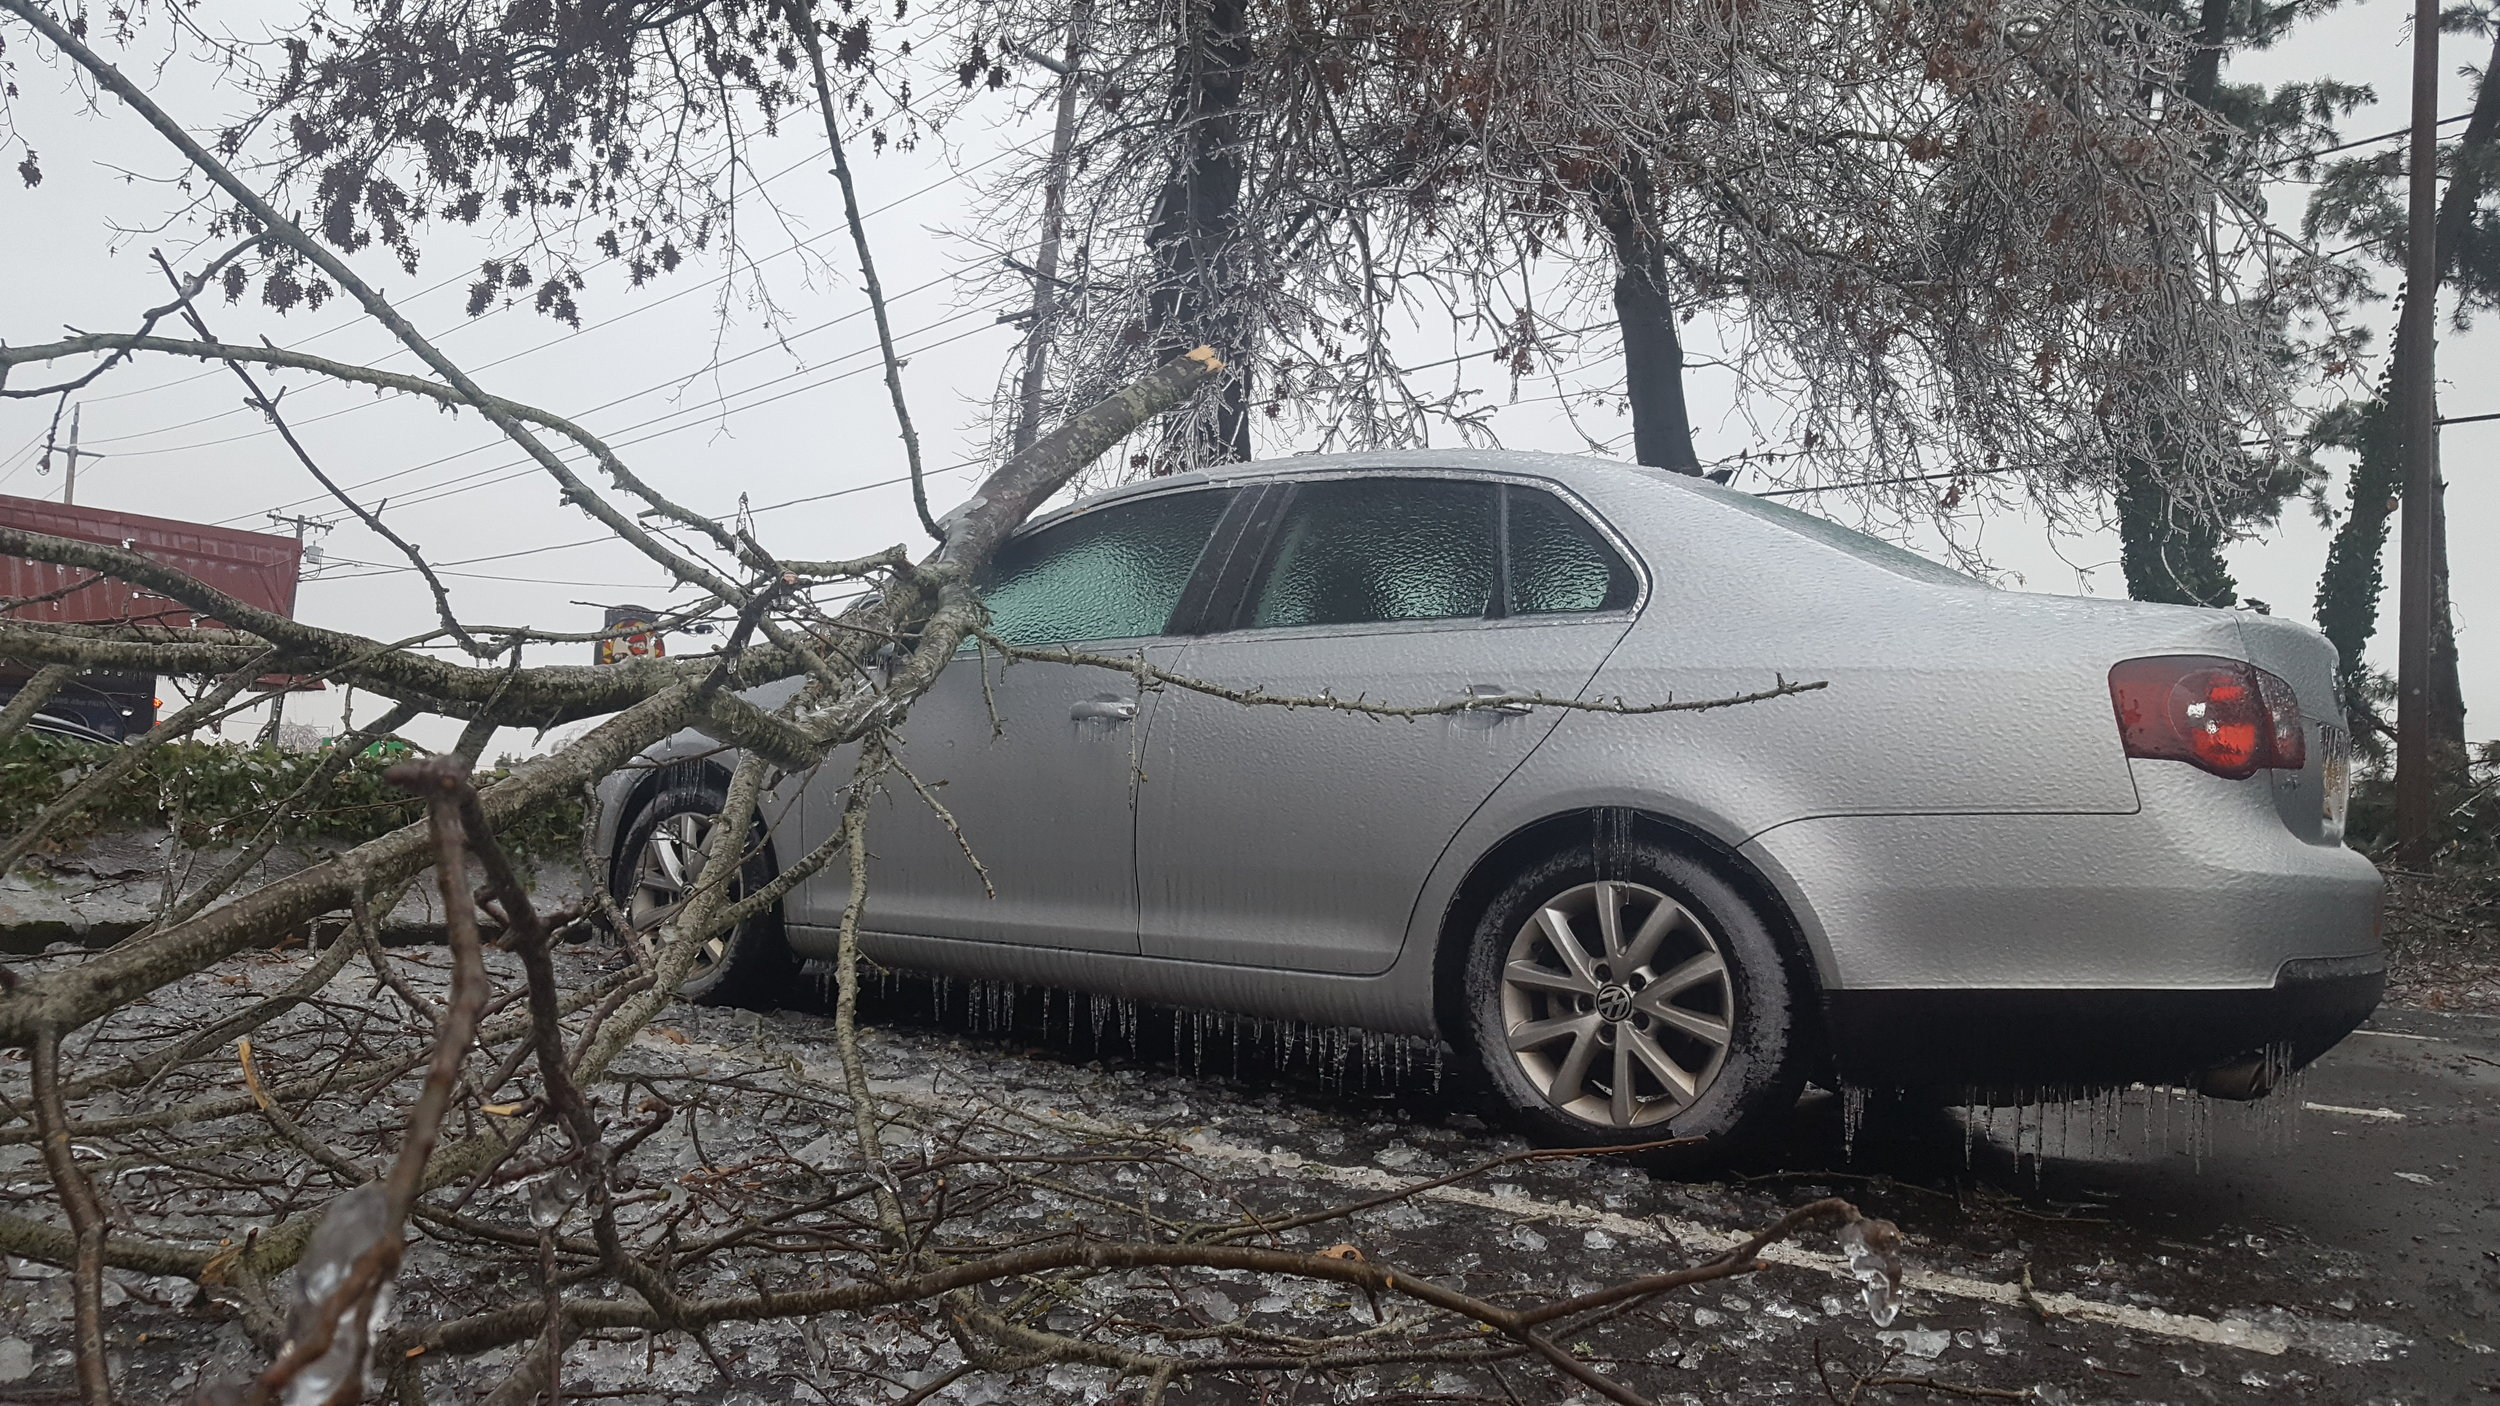 Including this particularly heavy limb on my car. The Jetta needed some more, denty character, anyway!